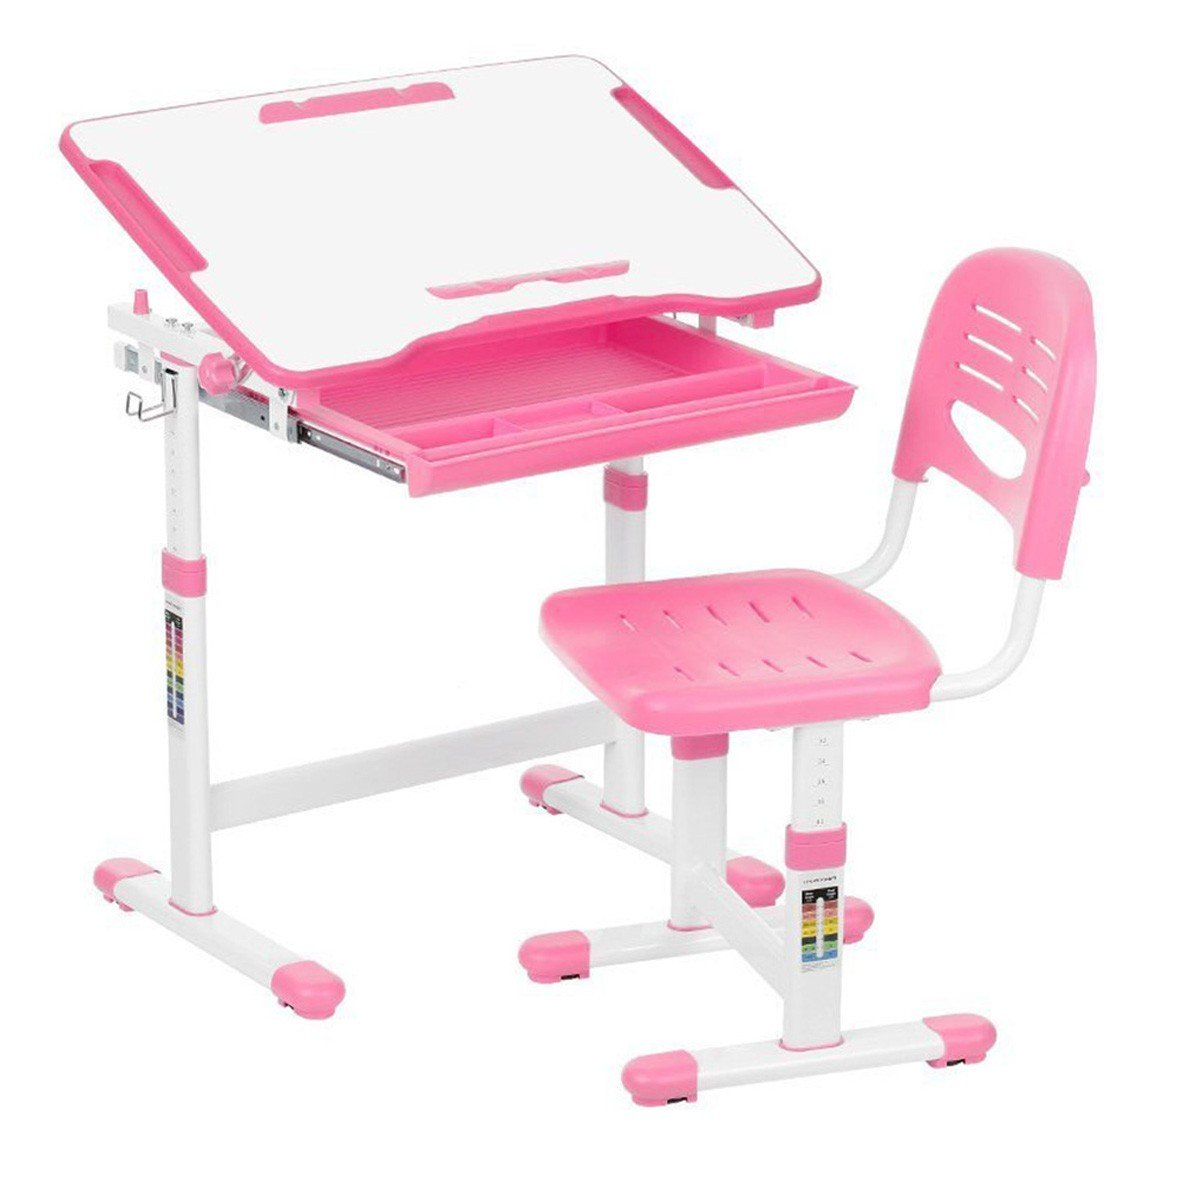 KidzDesk KD26P Desk and Chair Set (Pink)